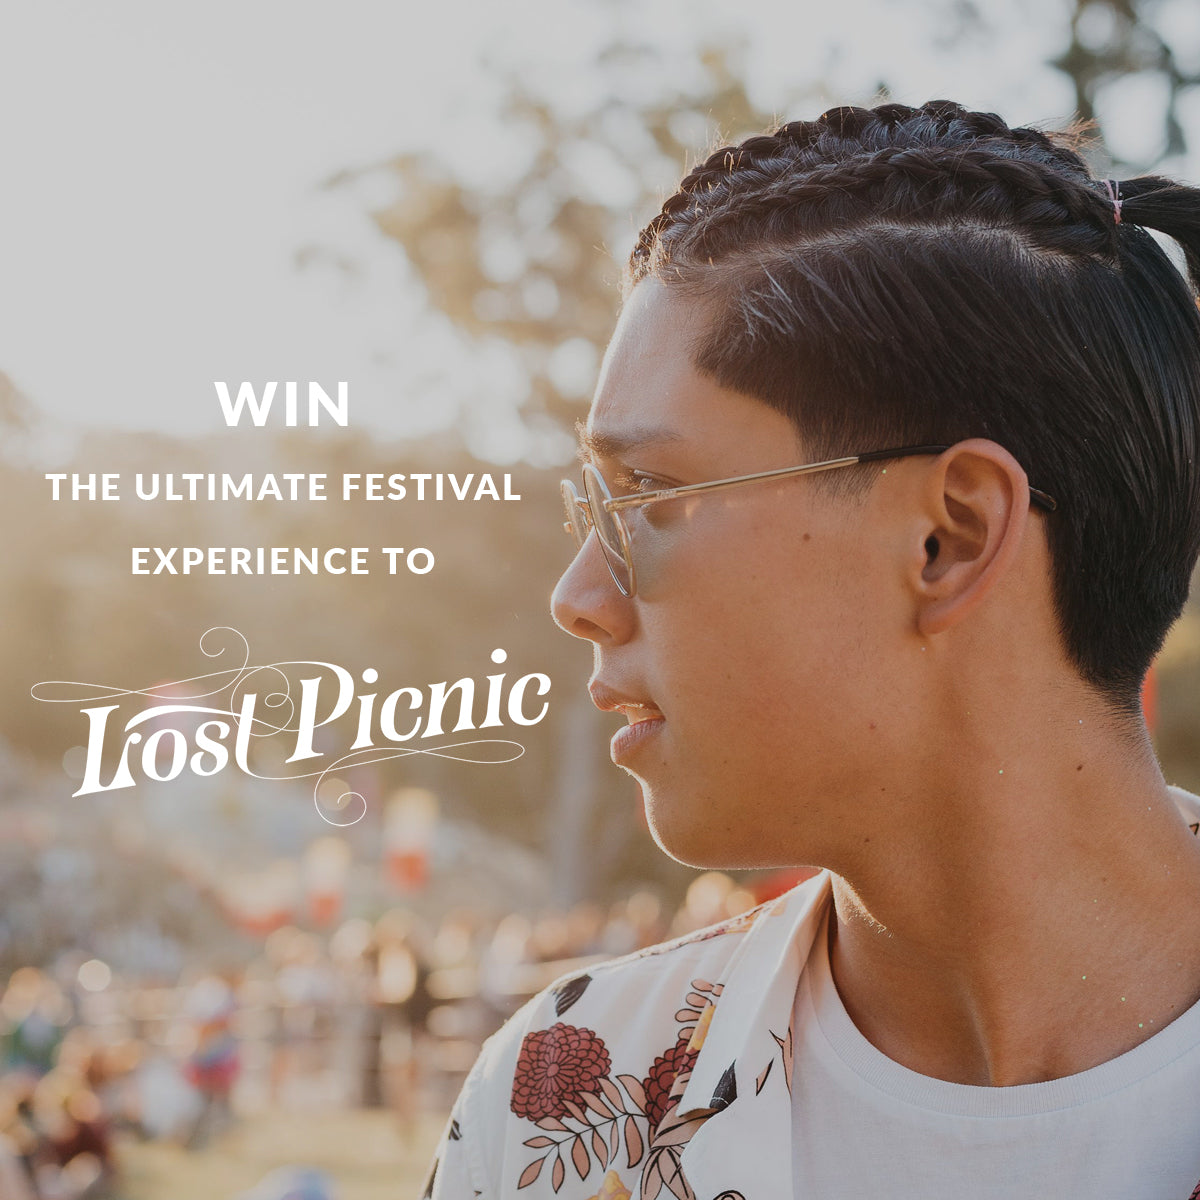 WIN: The Ultimate Festival Experience